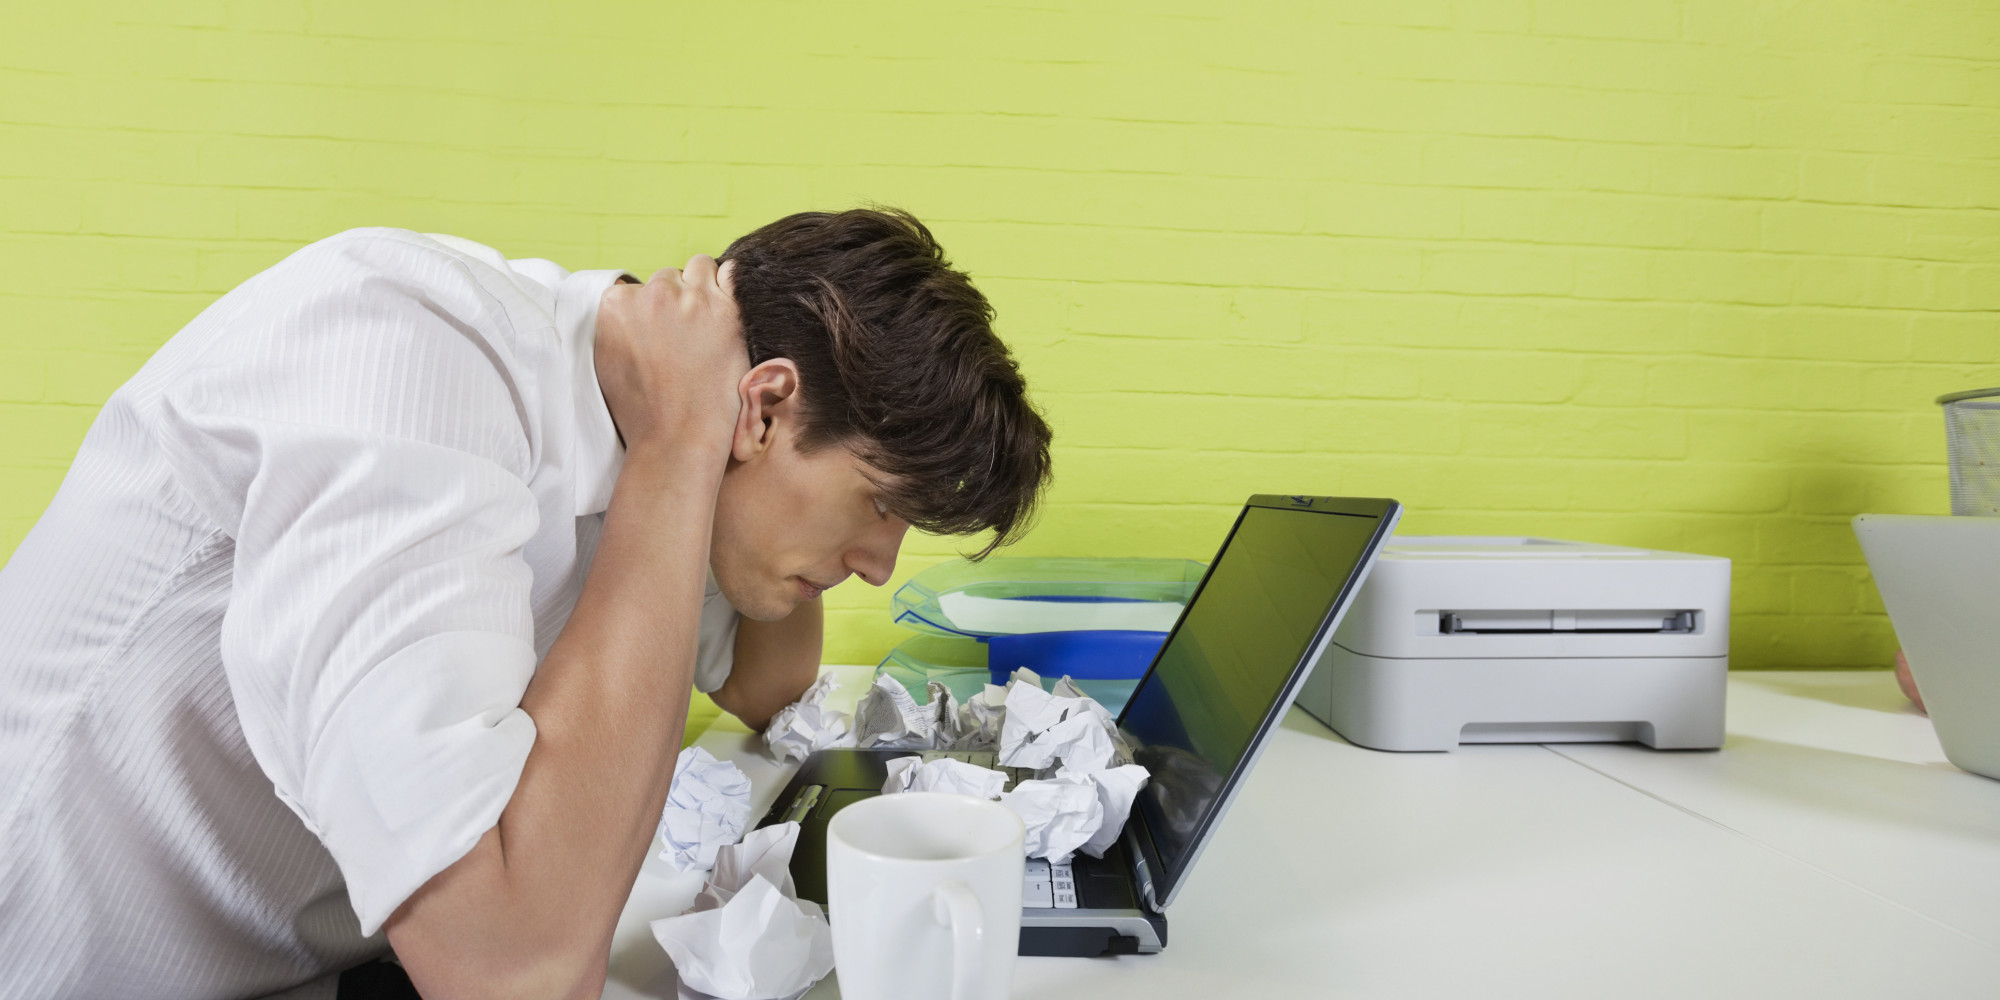 ways hating your job can ruin your health according to science 5 ways hating your job can ruin your health according to science the huffington post